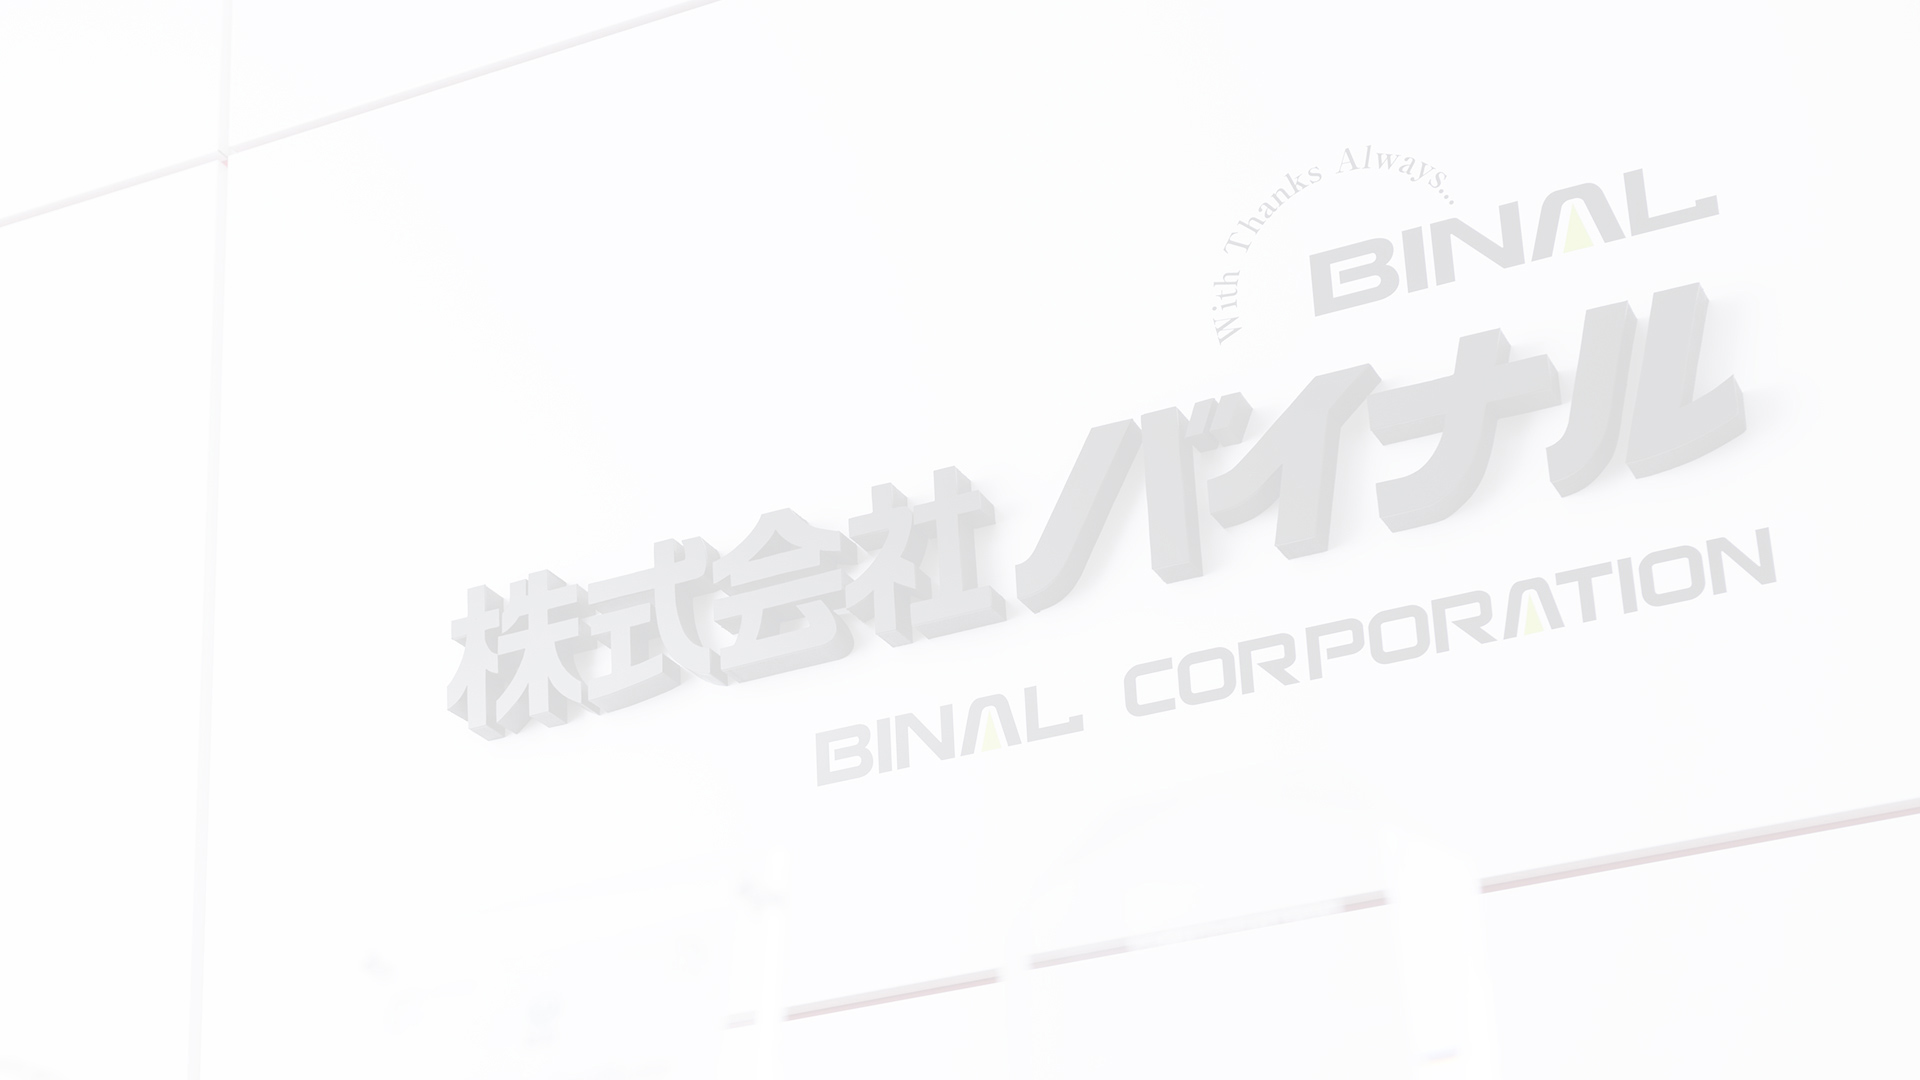 BINAL Asia Pacific (SG) has been chosen as the providing destination of customs clearance big data in Singapore and is the ONLY Japanese company.